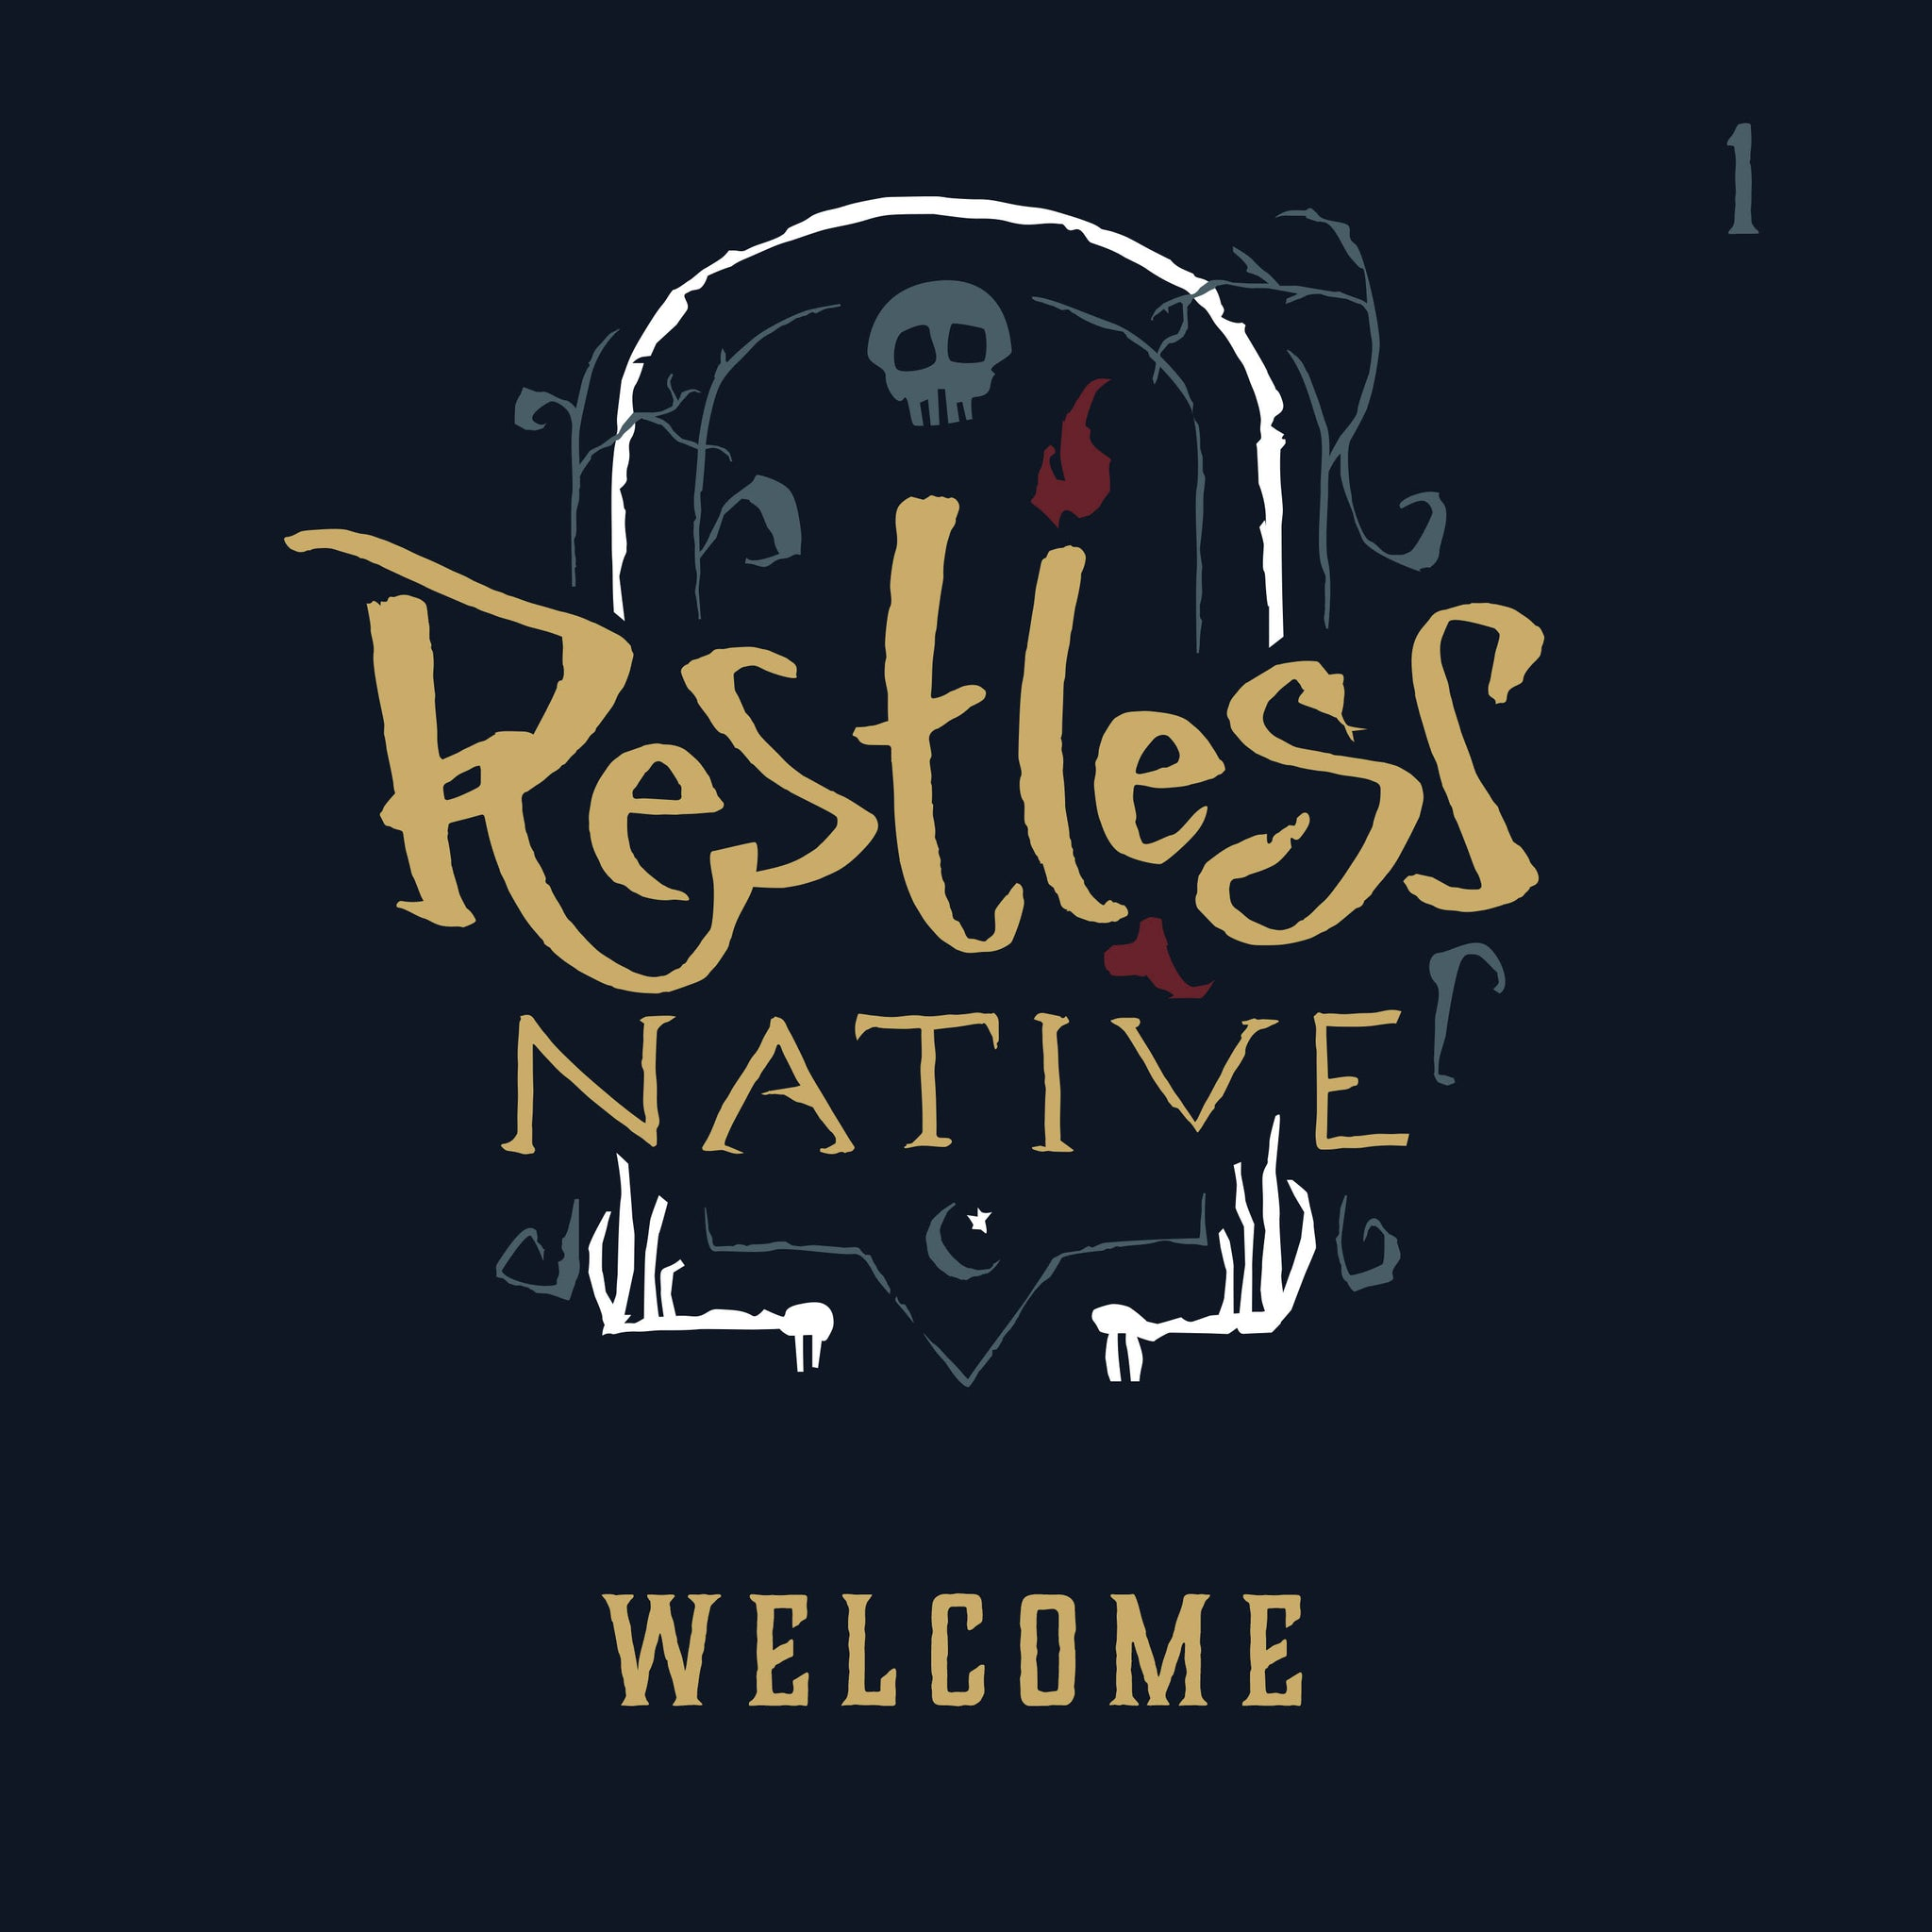 Episode 1: Ever Restless